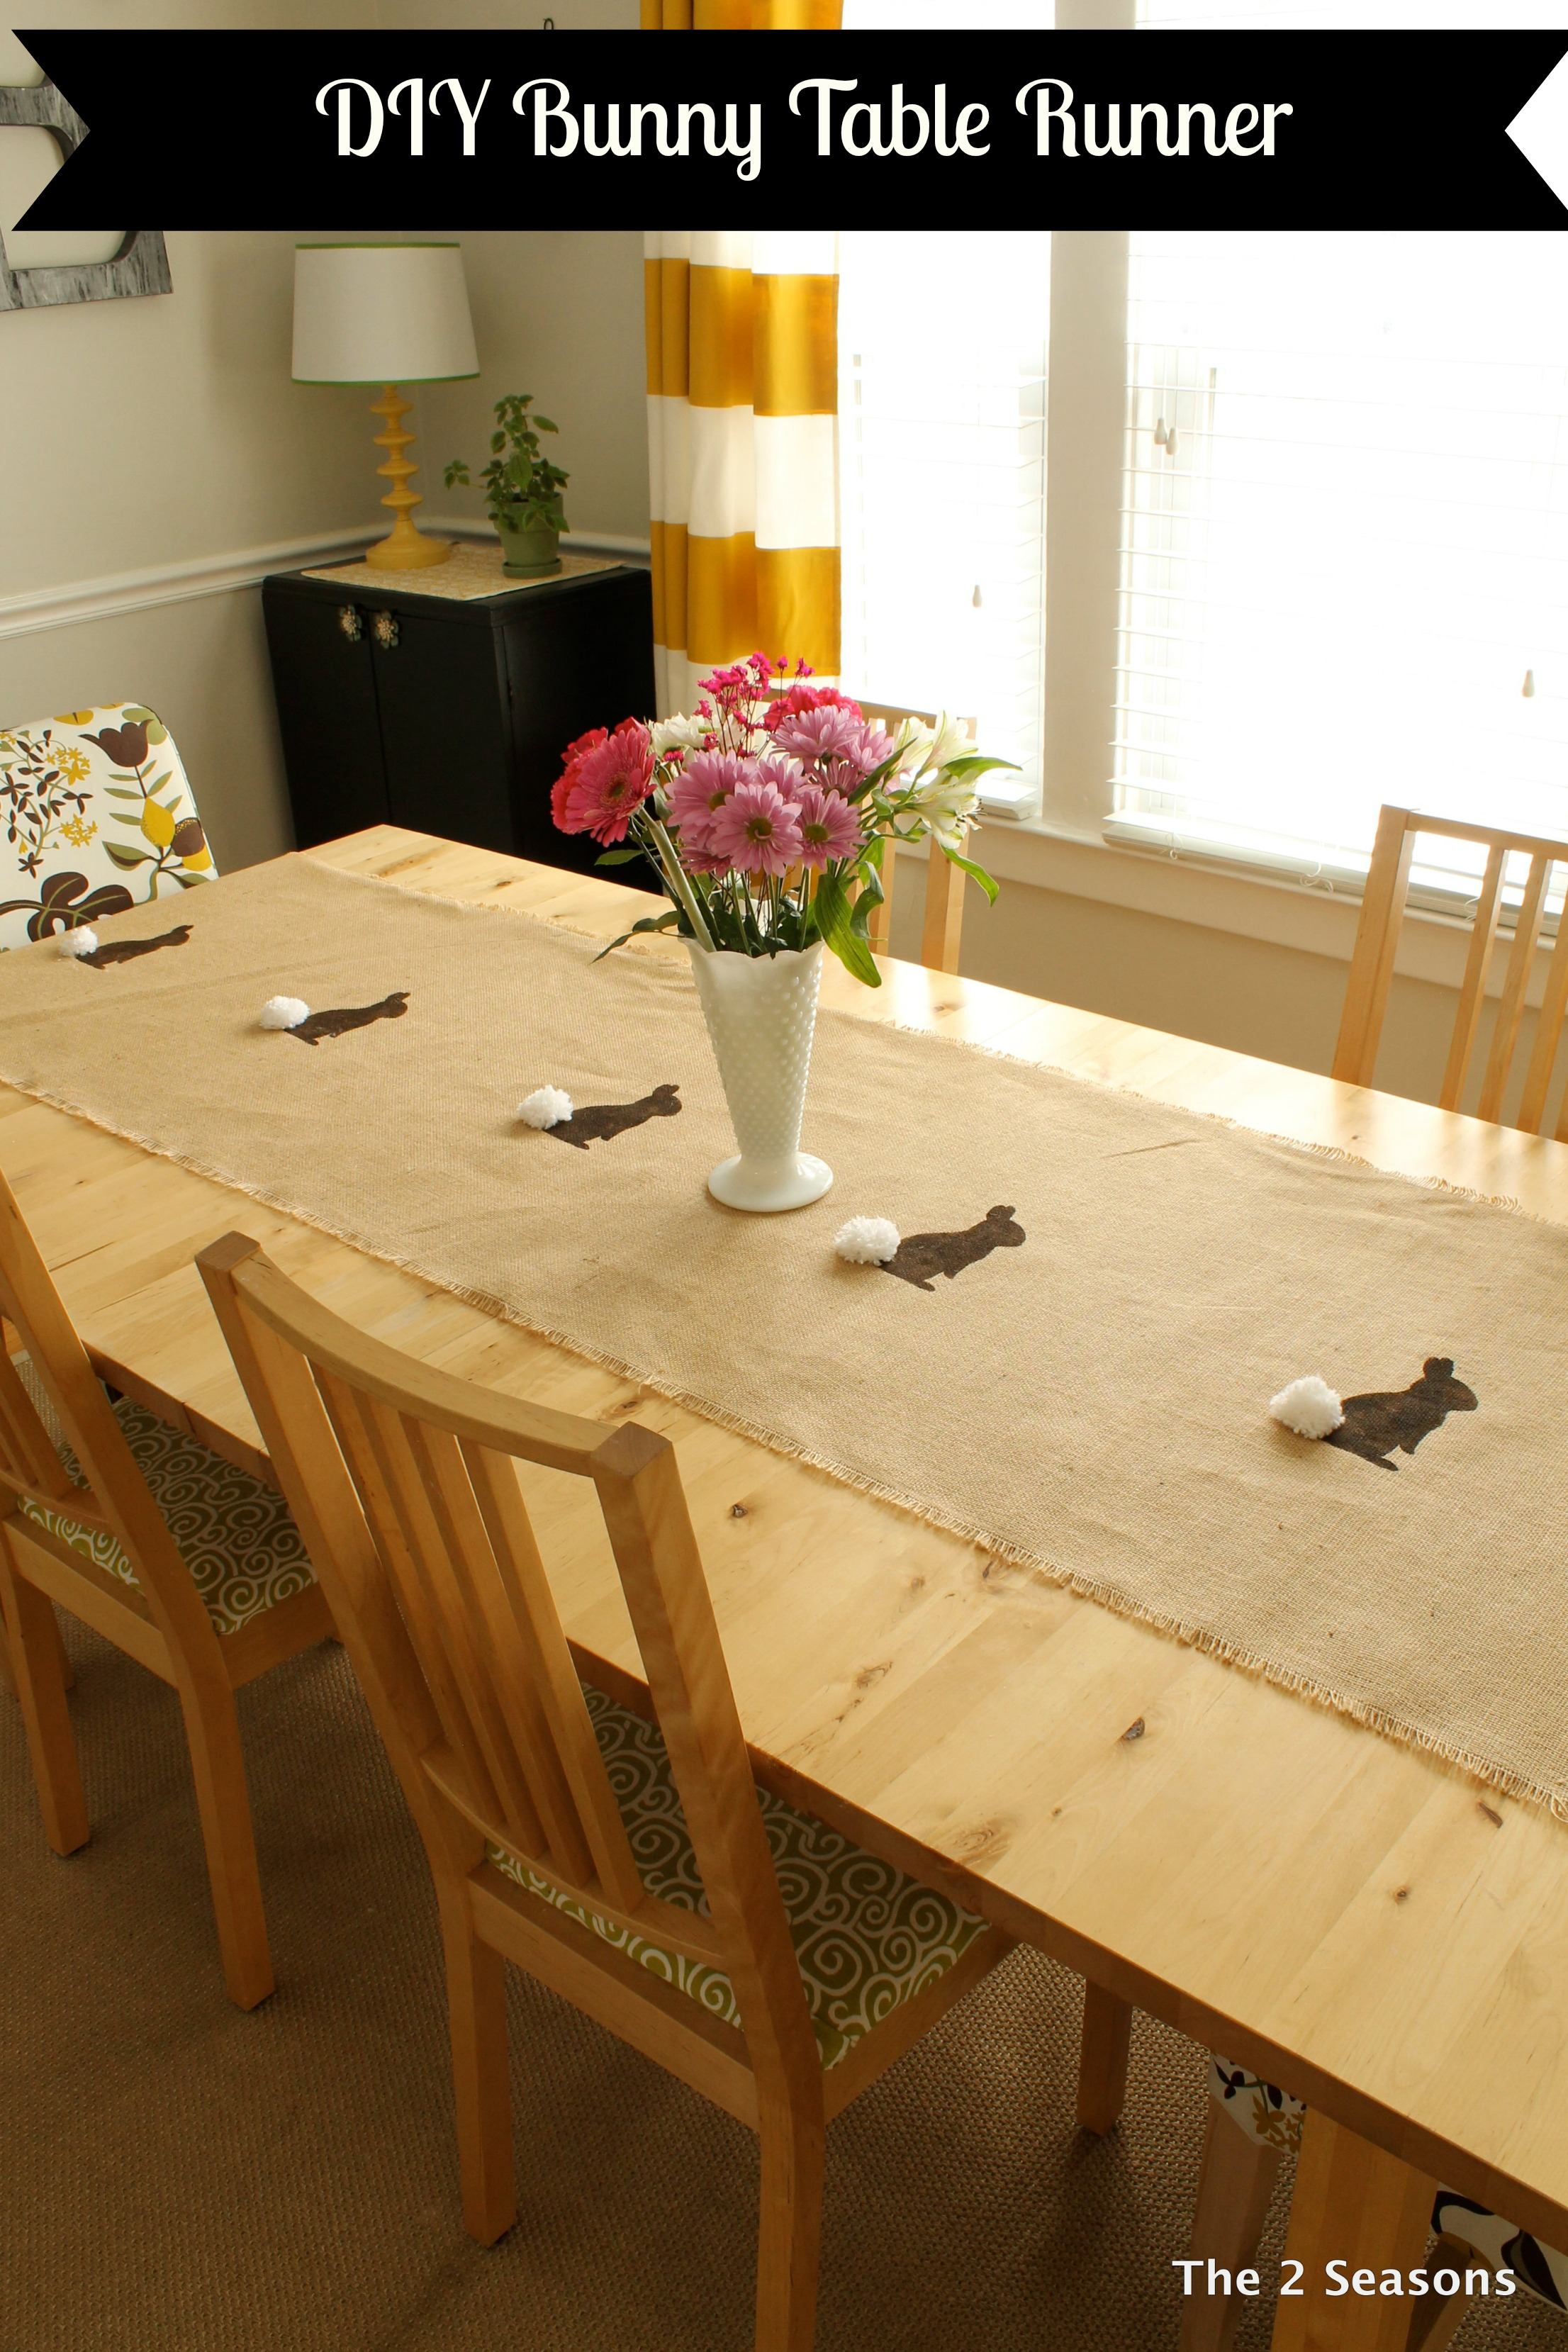 DIY Bunny Table Runner